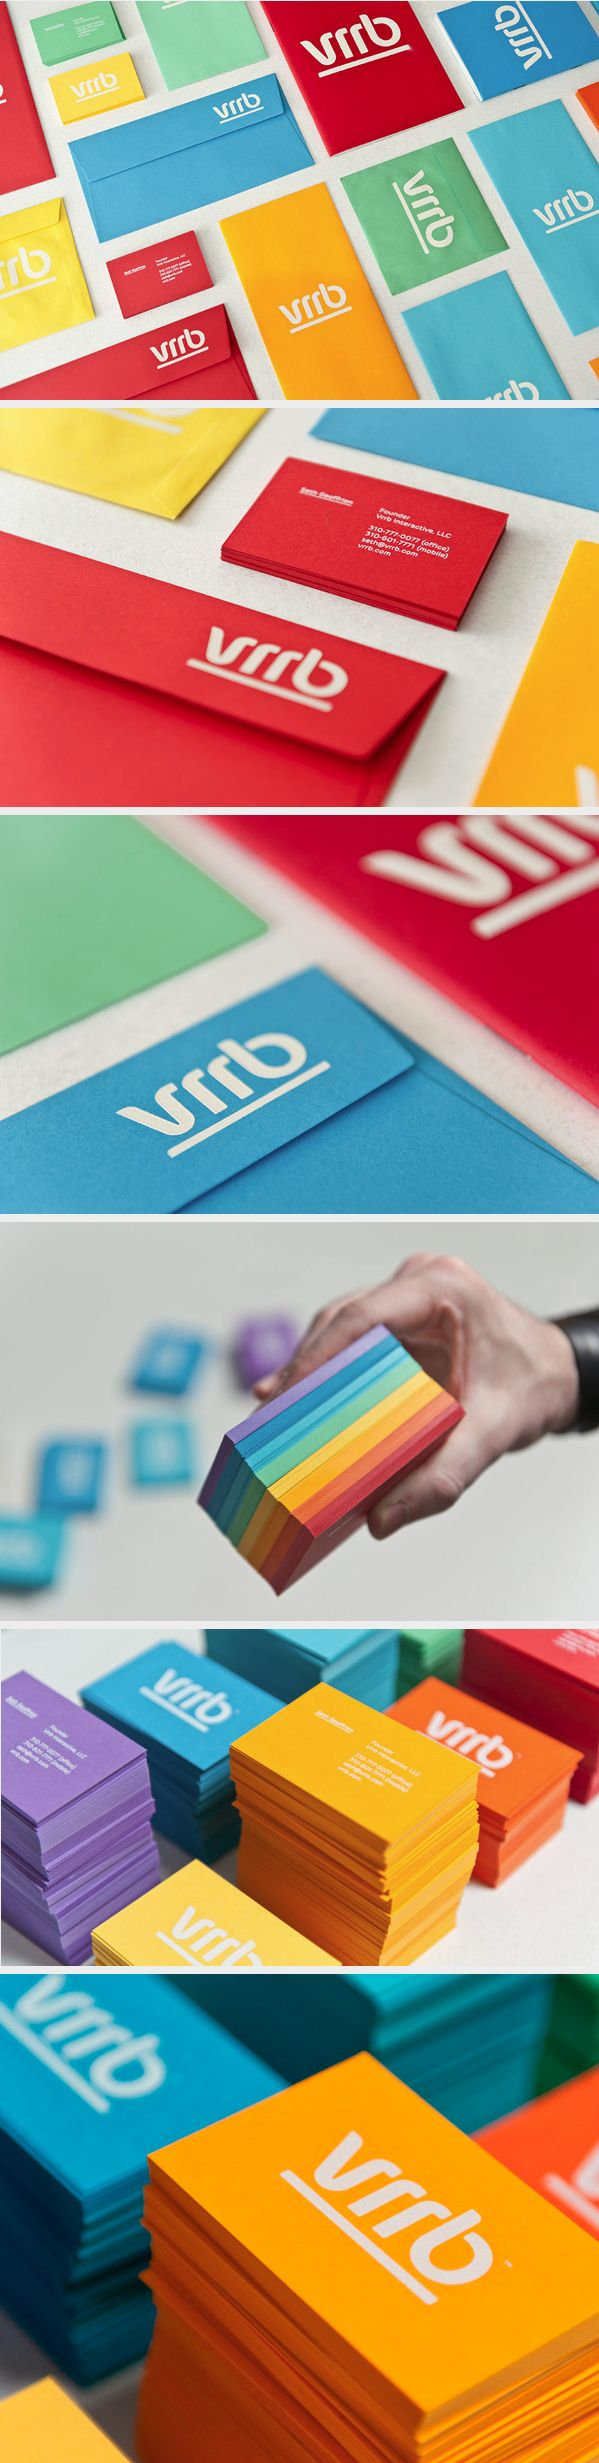 These #businesscards will catch your attention by having bright colors.